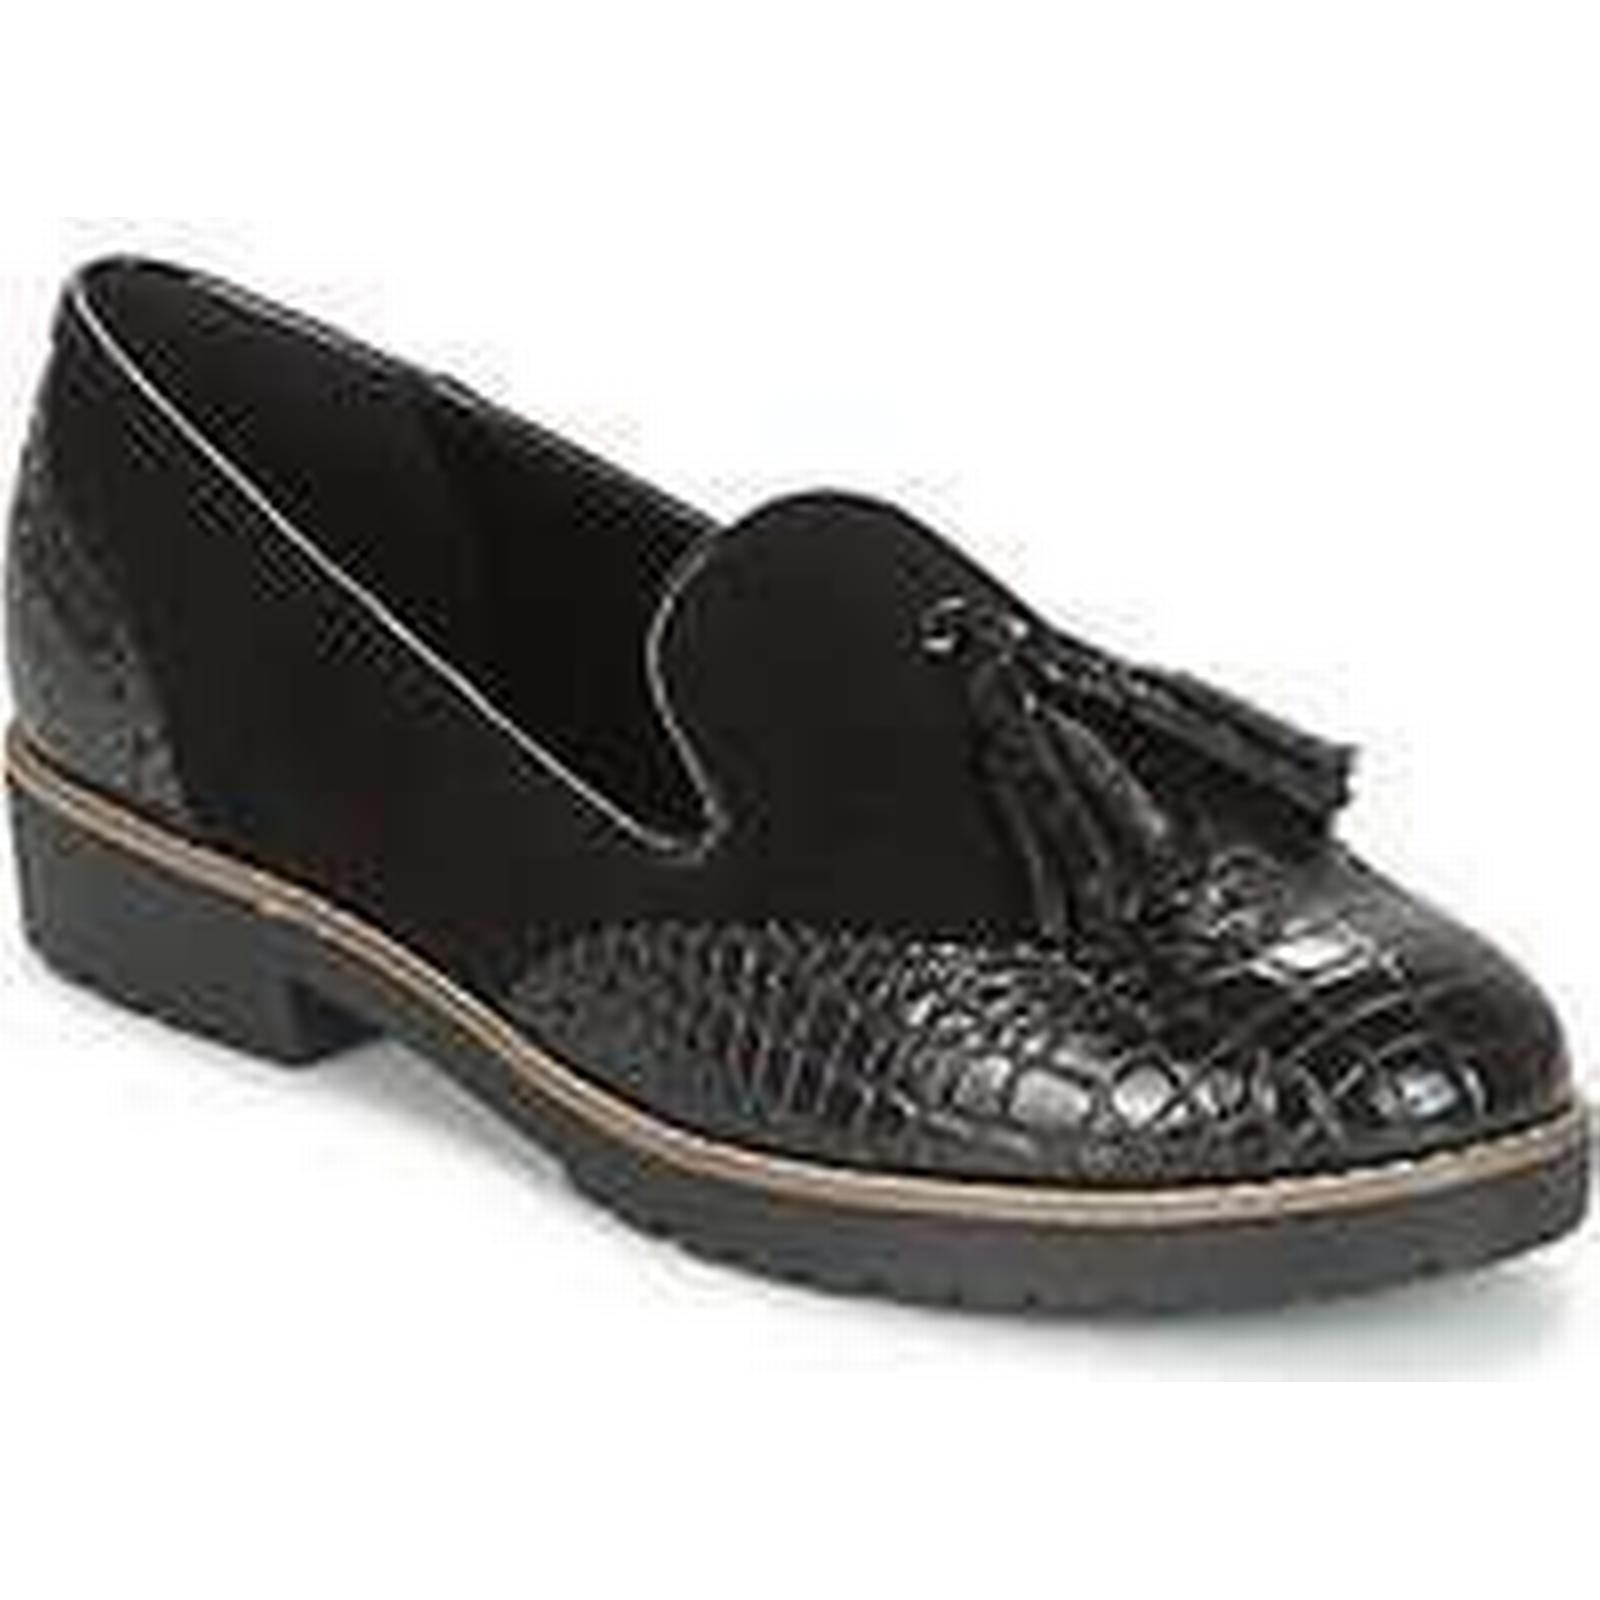 Spartoo.co.uk Dune Gilmore women's Shoes Black (Pumps / Ballerinas) in Black Shoes 5cd5d9